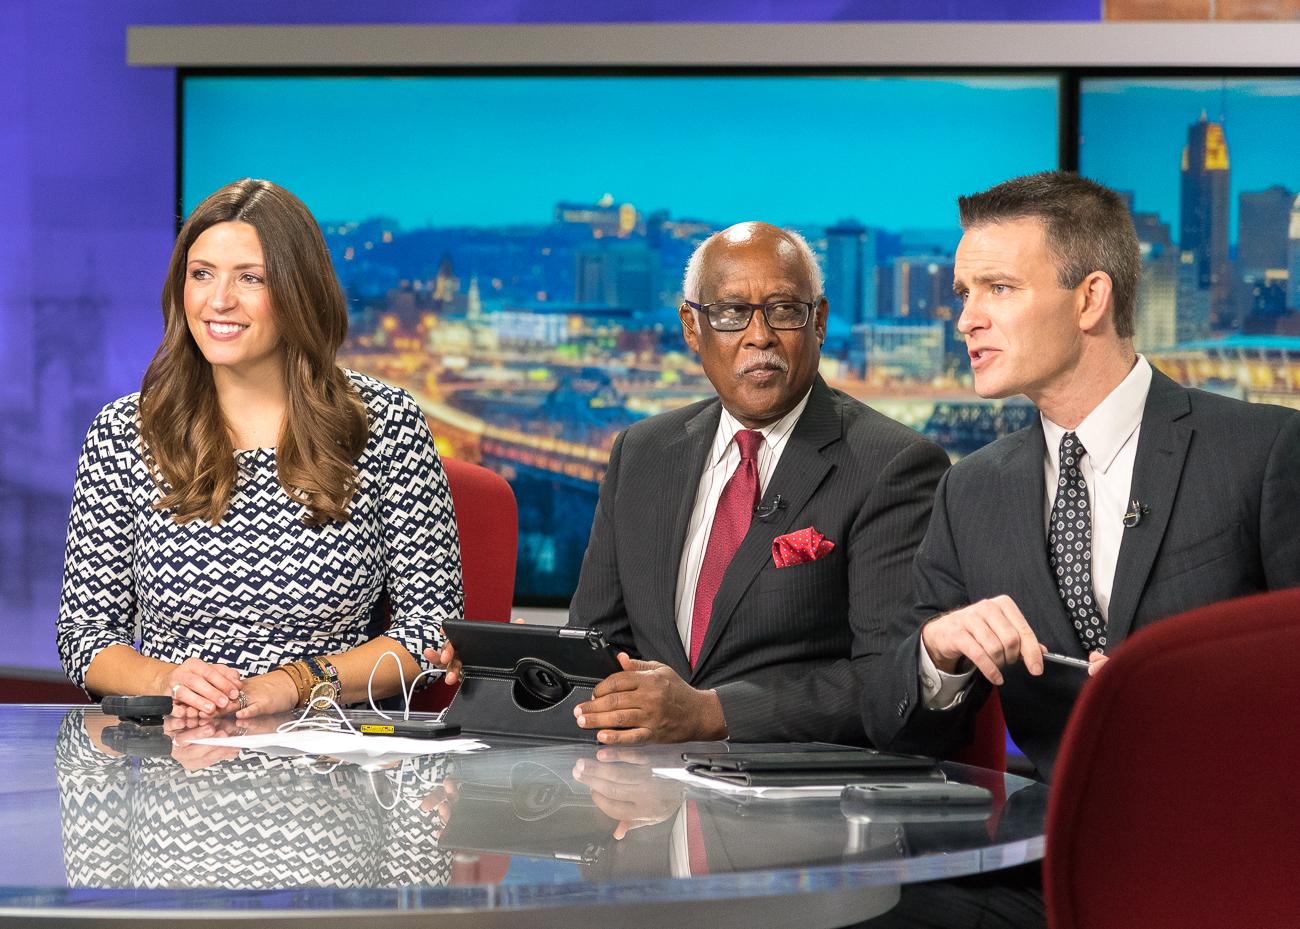 <p>Meteorologist Tera Blake with Local 12 News anchors John Lomax and Bob Herzog / Image: Phil Armstrong, Cincinnati Refined // Published: 10.5.18<br></p>